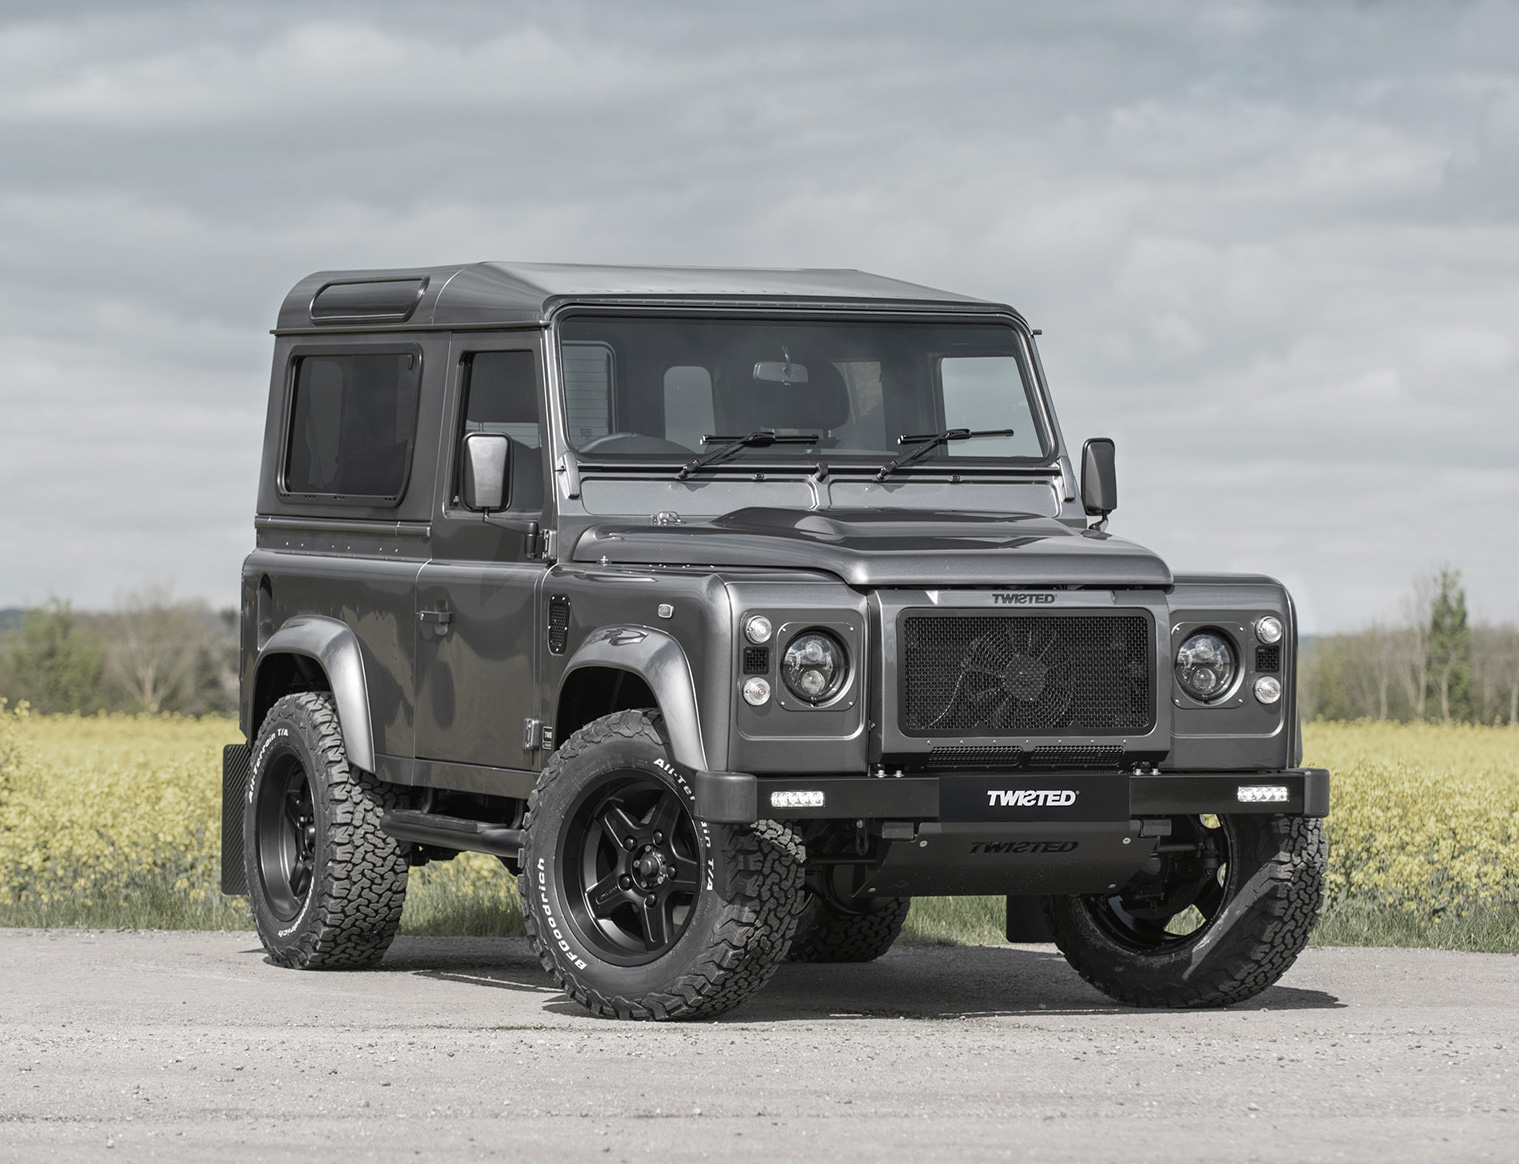 Get Twisted & Get Into the Land Rover of Your Dreams at werd.com